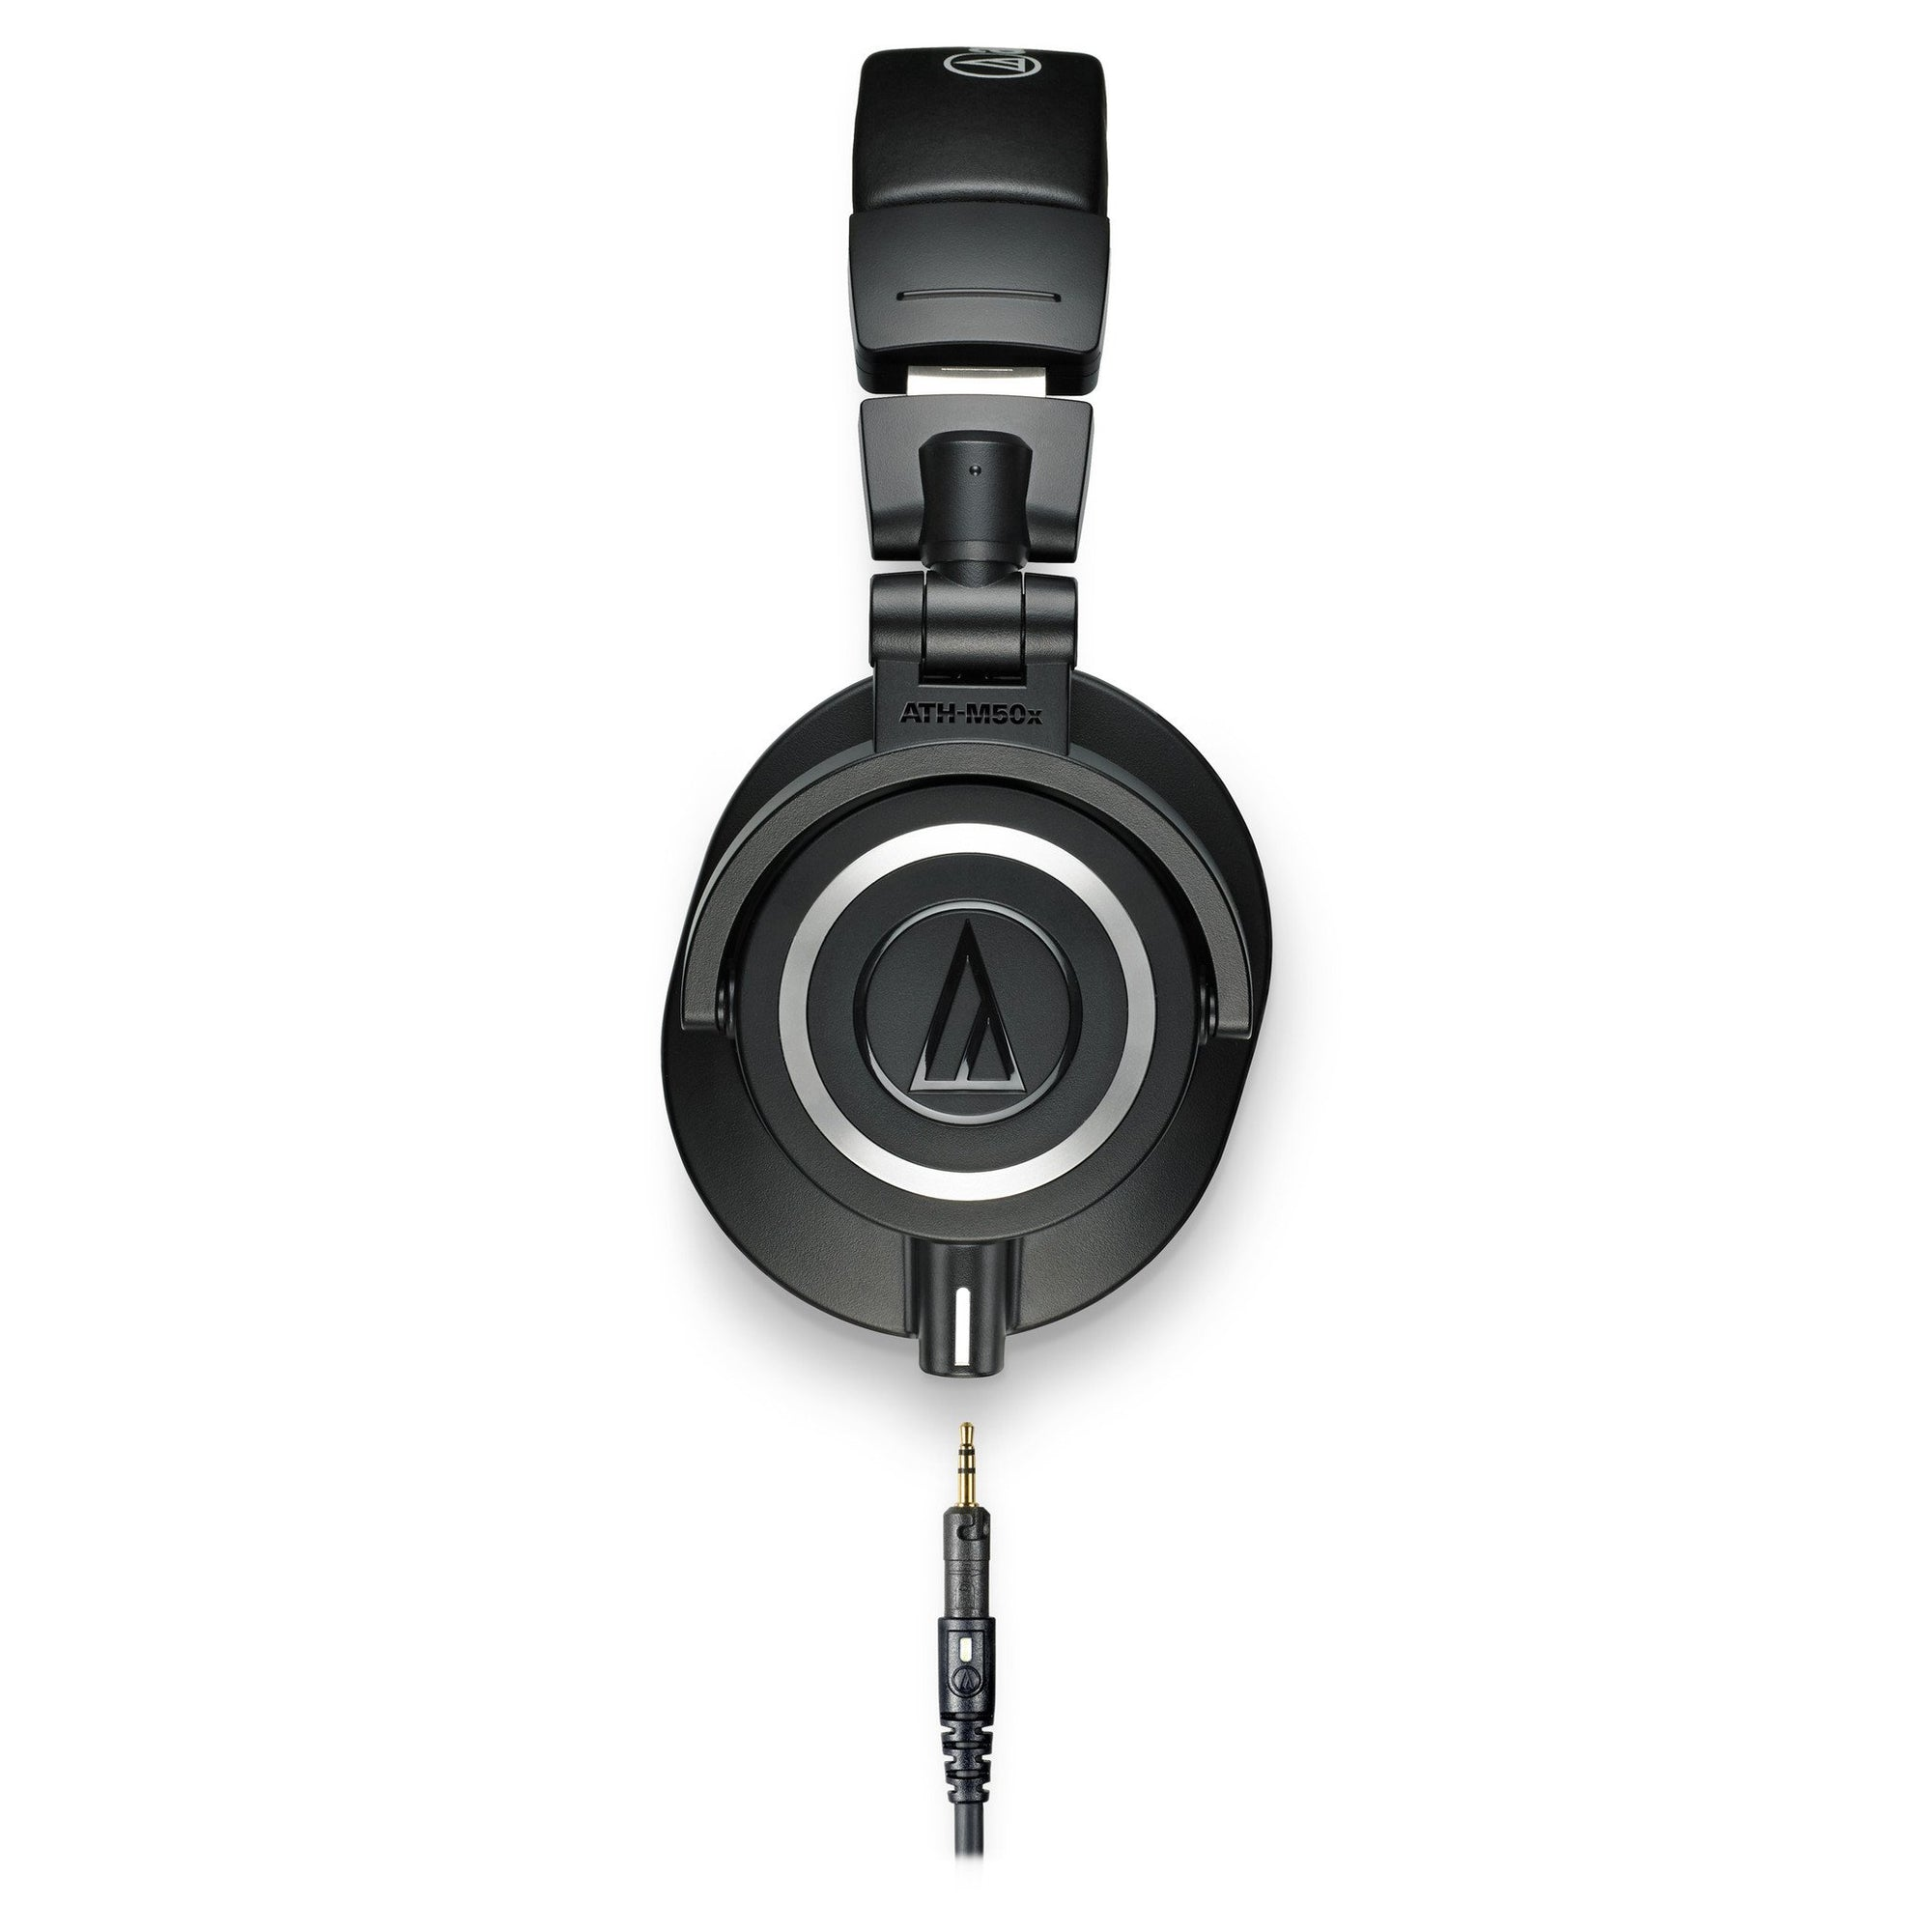 Closed Headphones - Audio-Technica ATH-M50x Closed Headphones BLACK